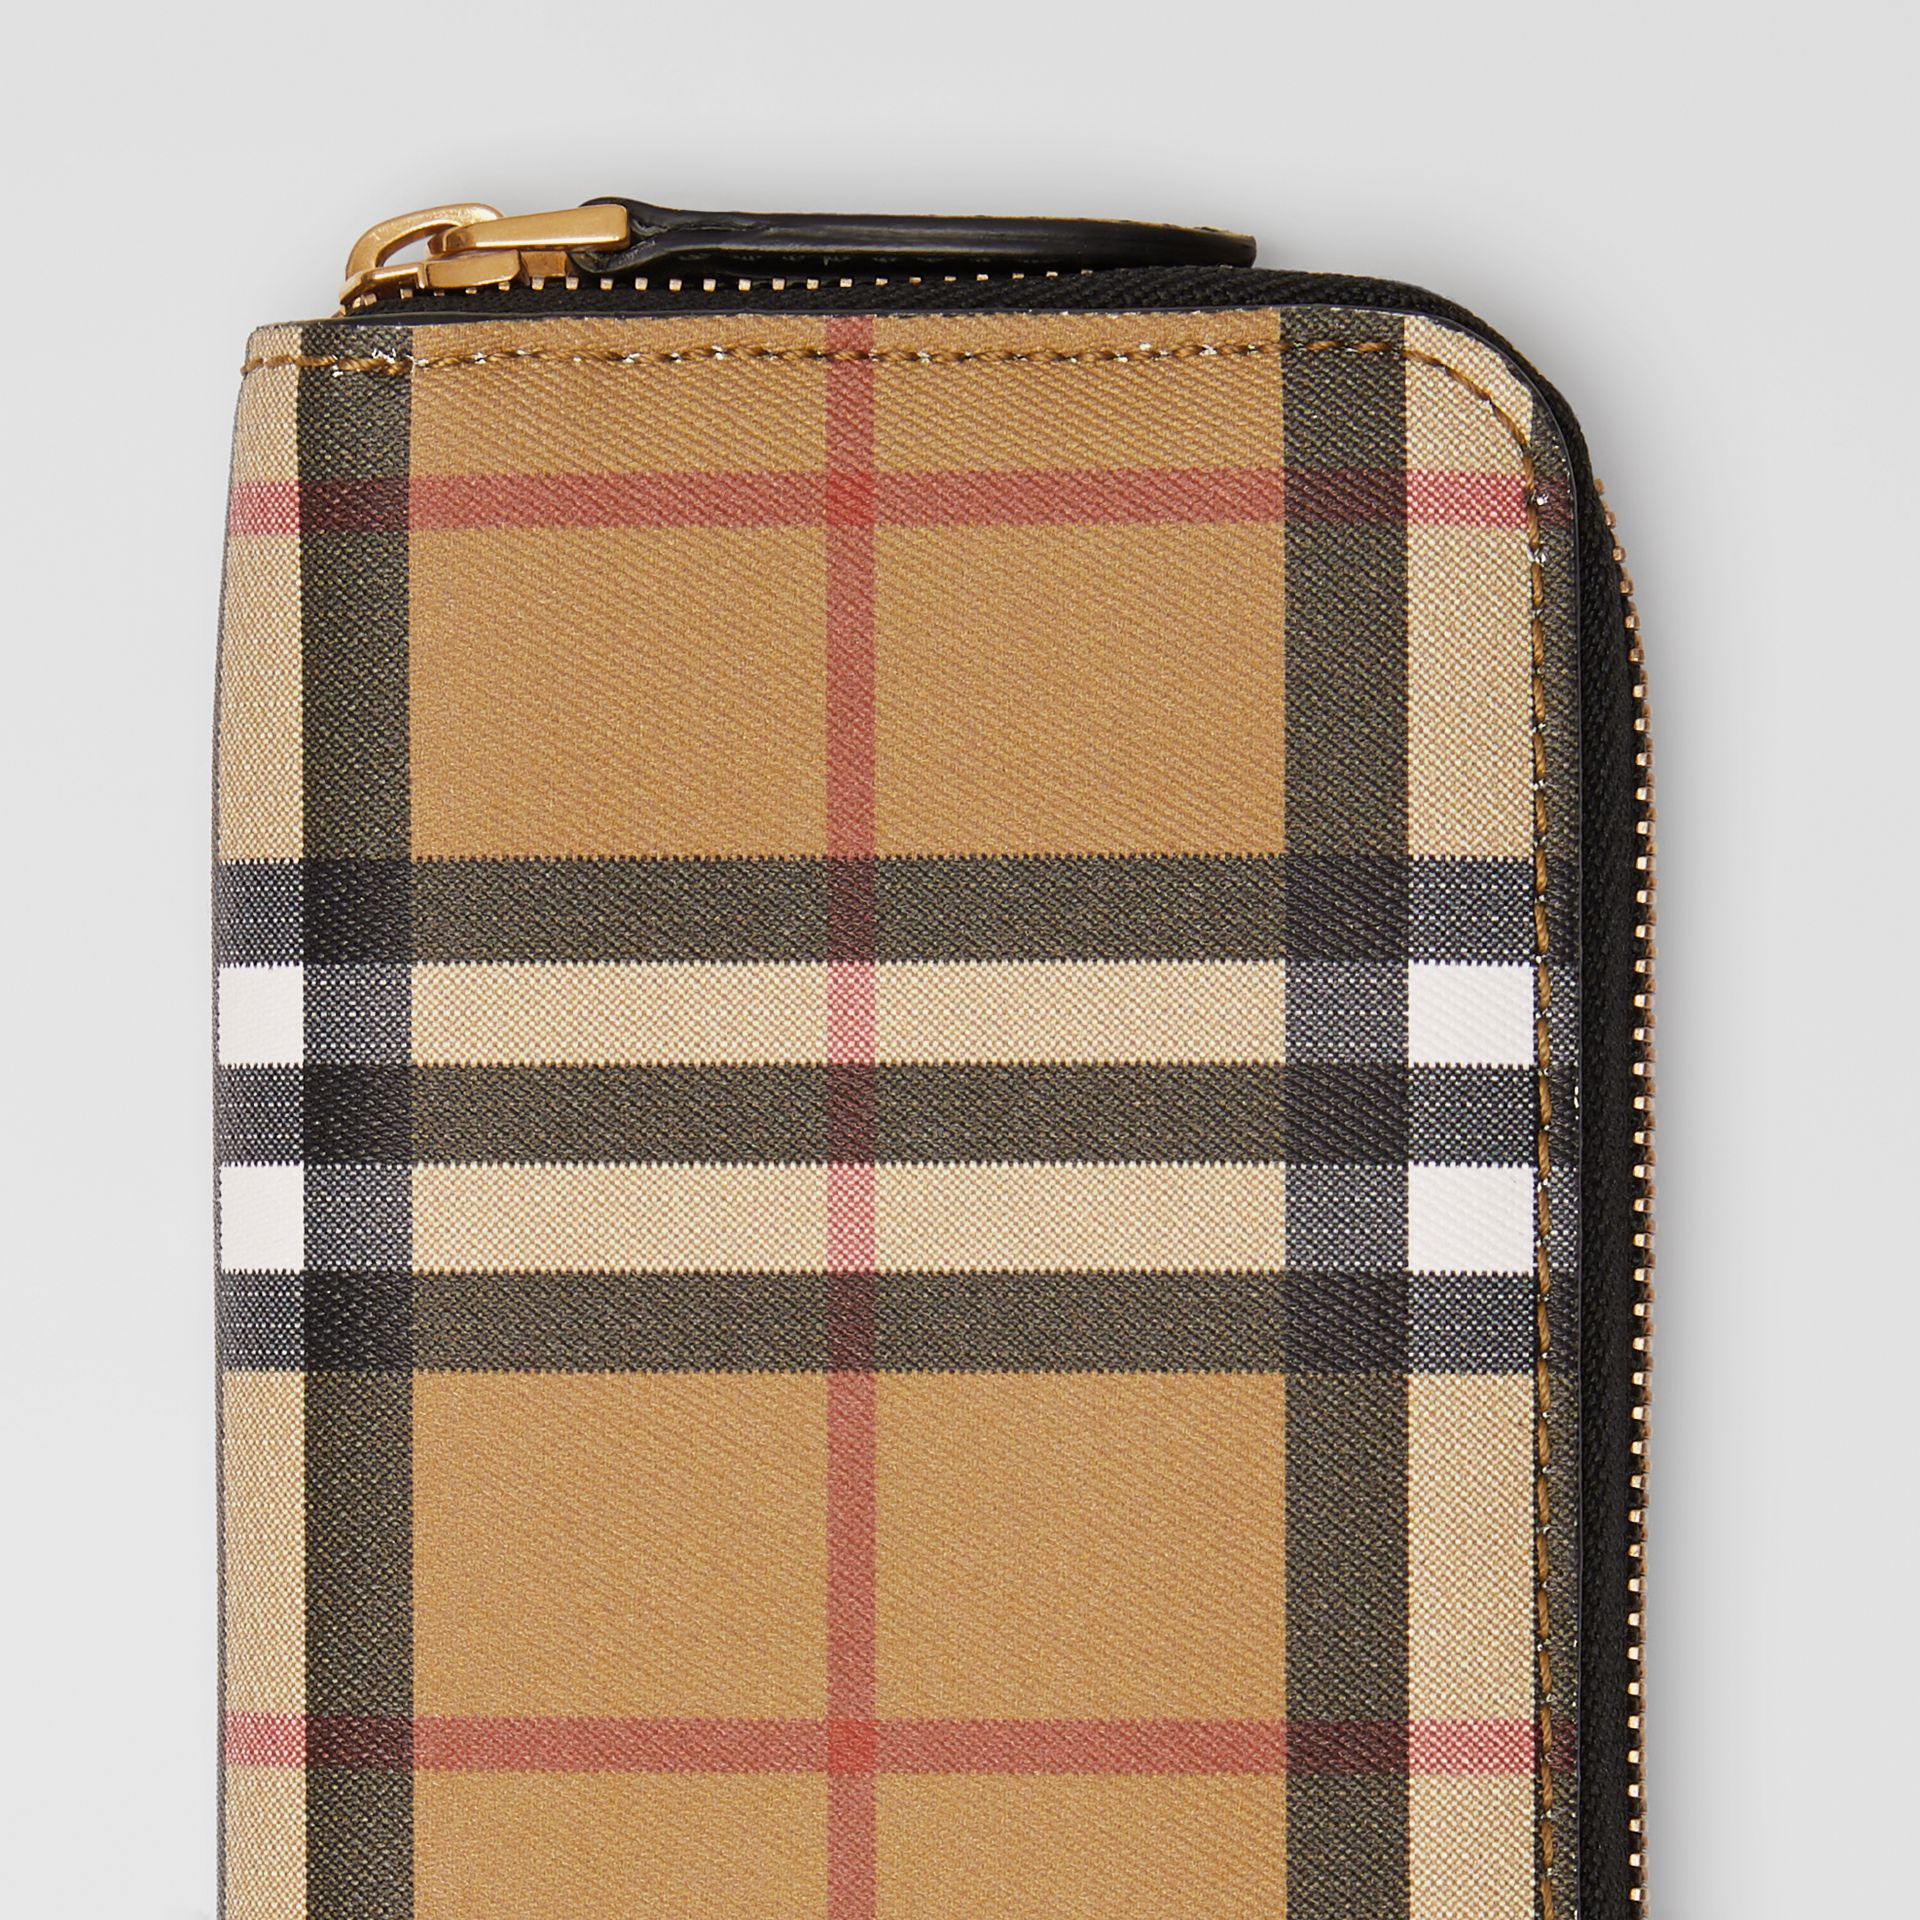 Vintage Check and Leather Ziparound Wallet in Black - Women | Burberry Hong Kong - gallery image 1